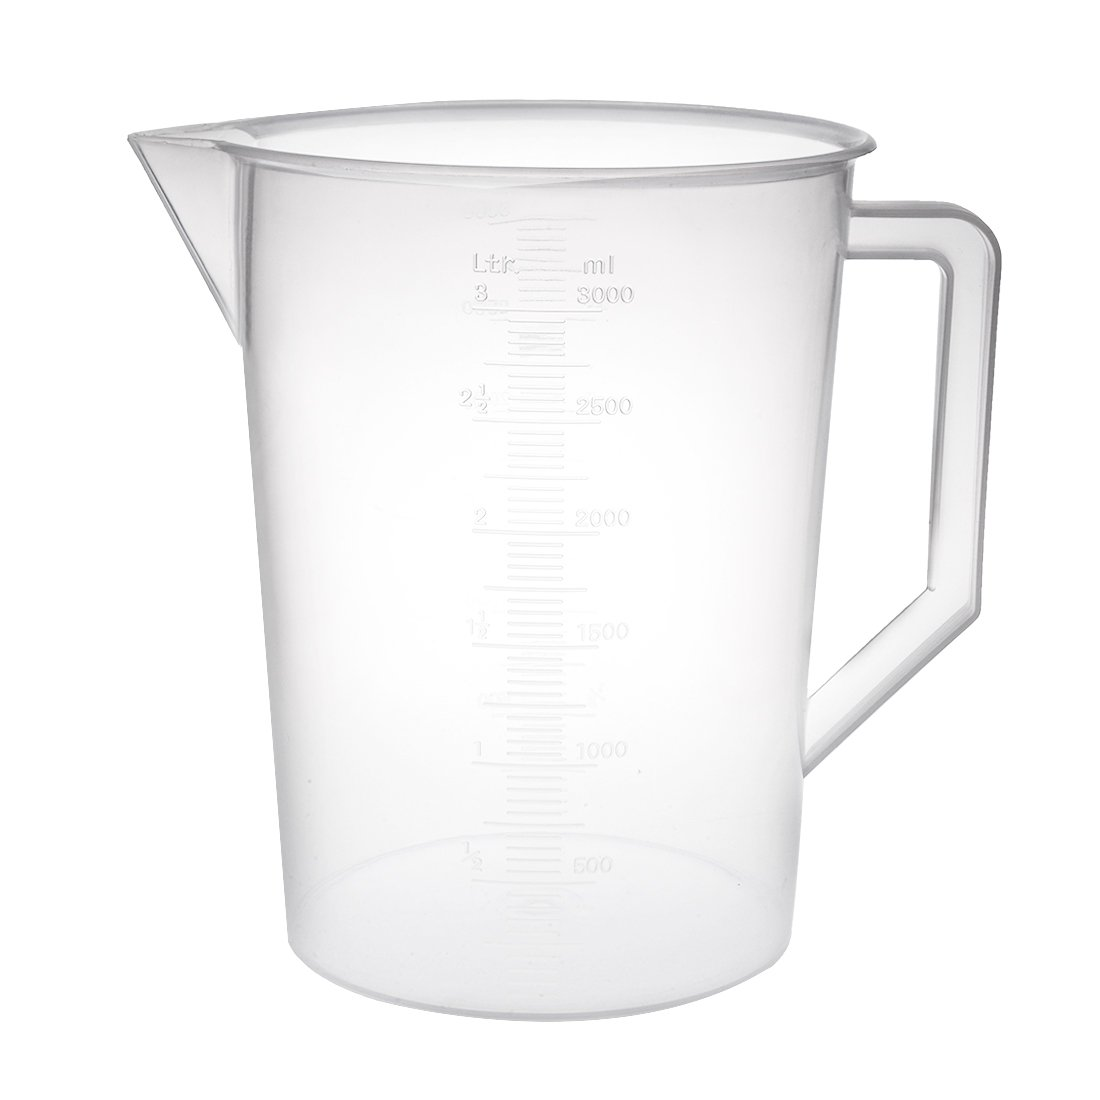 uxcell Laboratory Clear White PP Measuring Cup Handled Beaker.